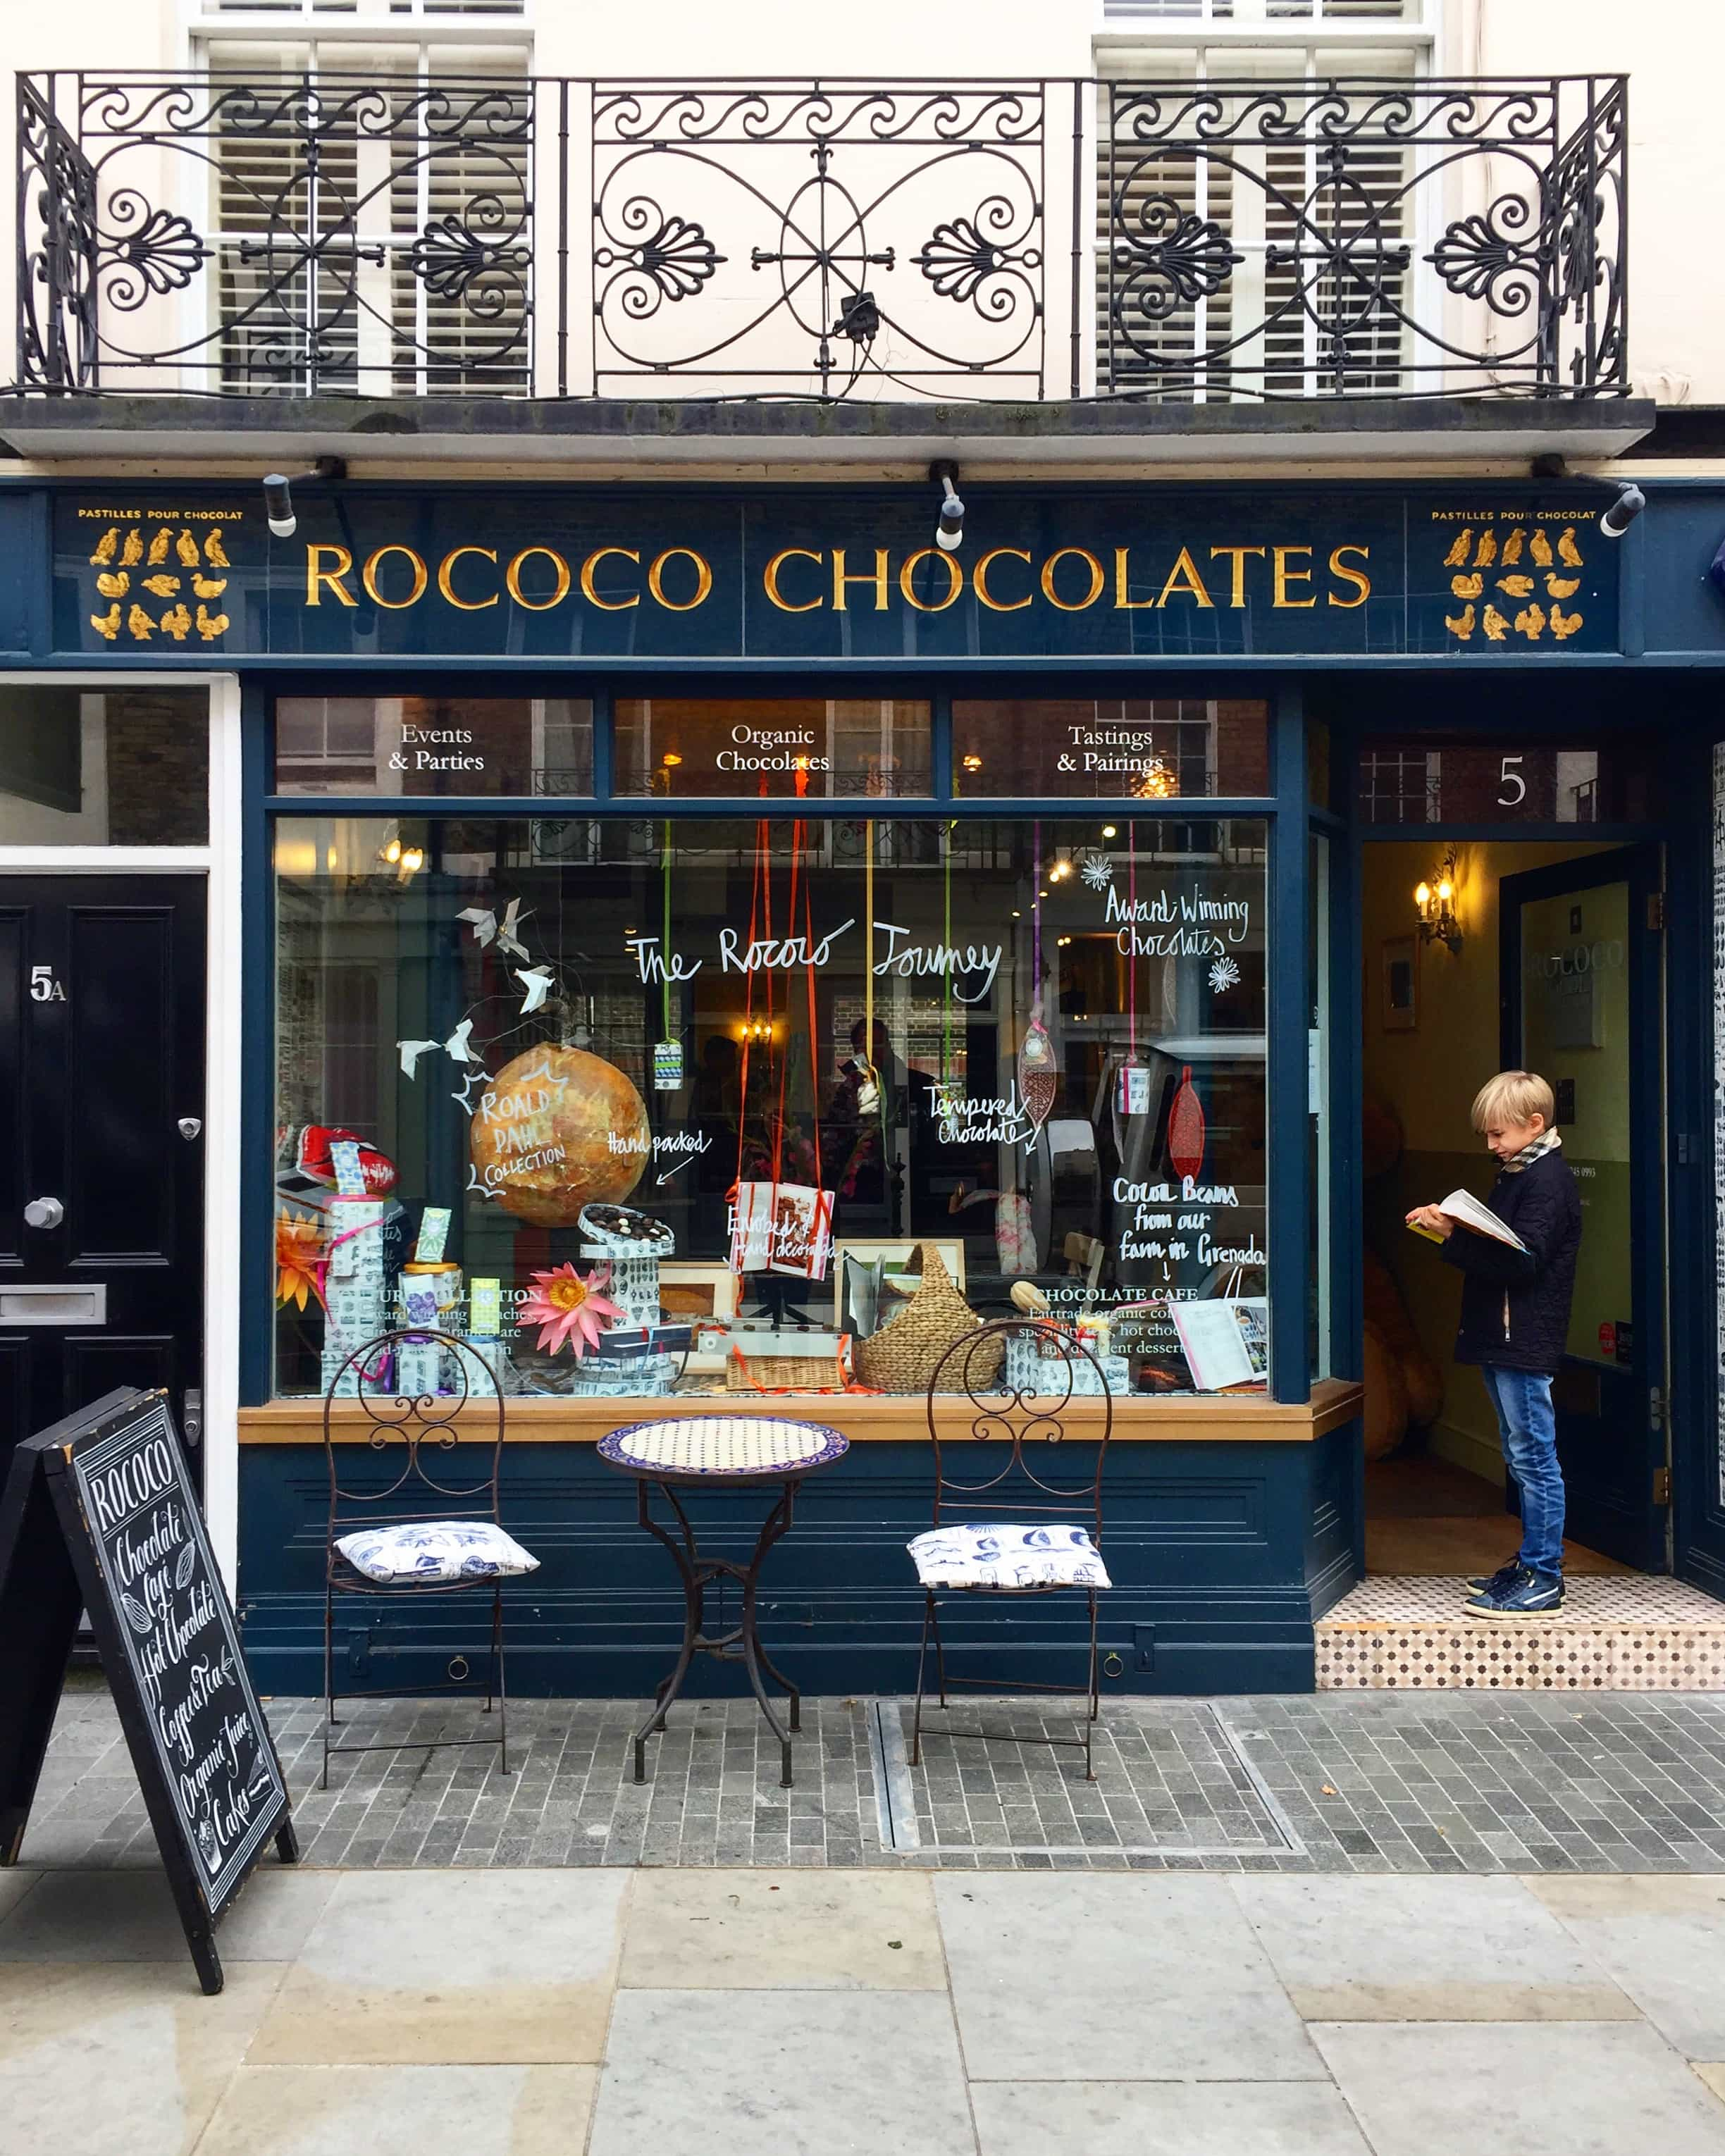 Signature Hot Chocolate, Rococo Chocolates - 7 More Hot Chocolates To Drink In London